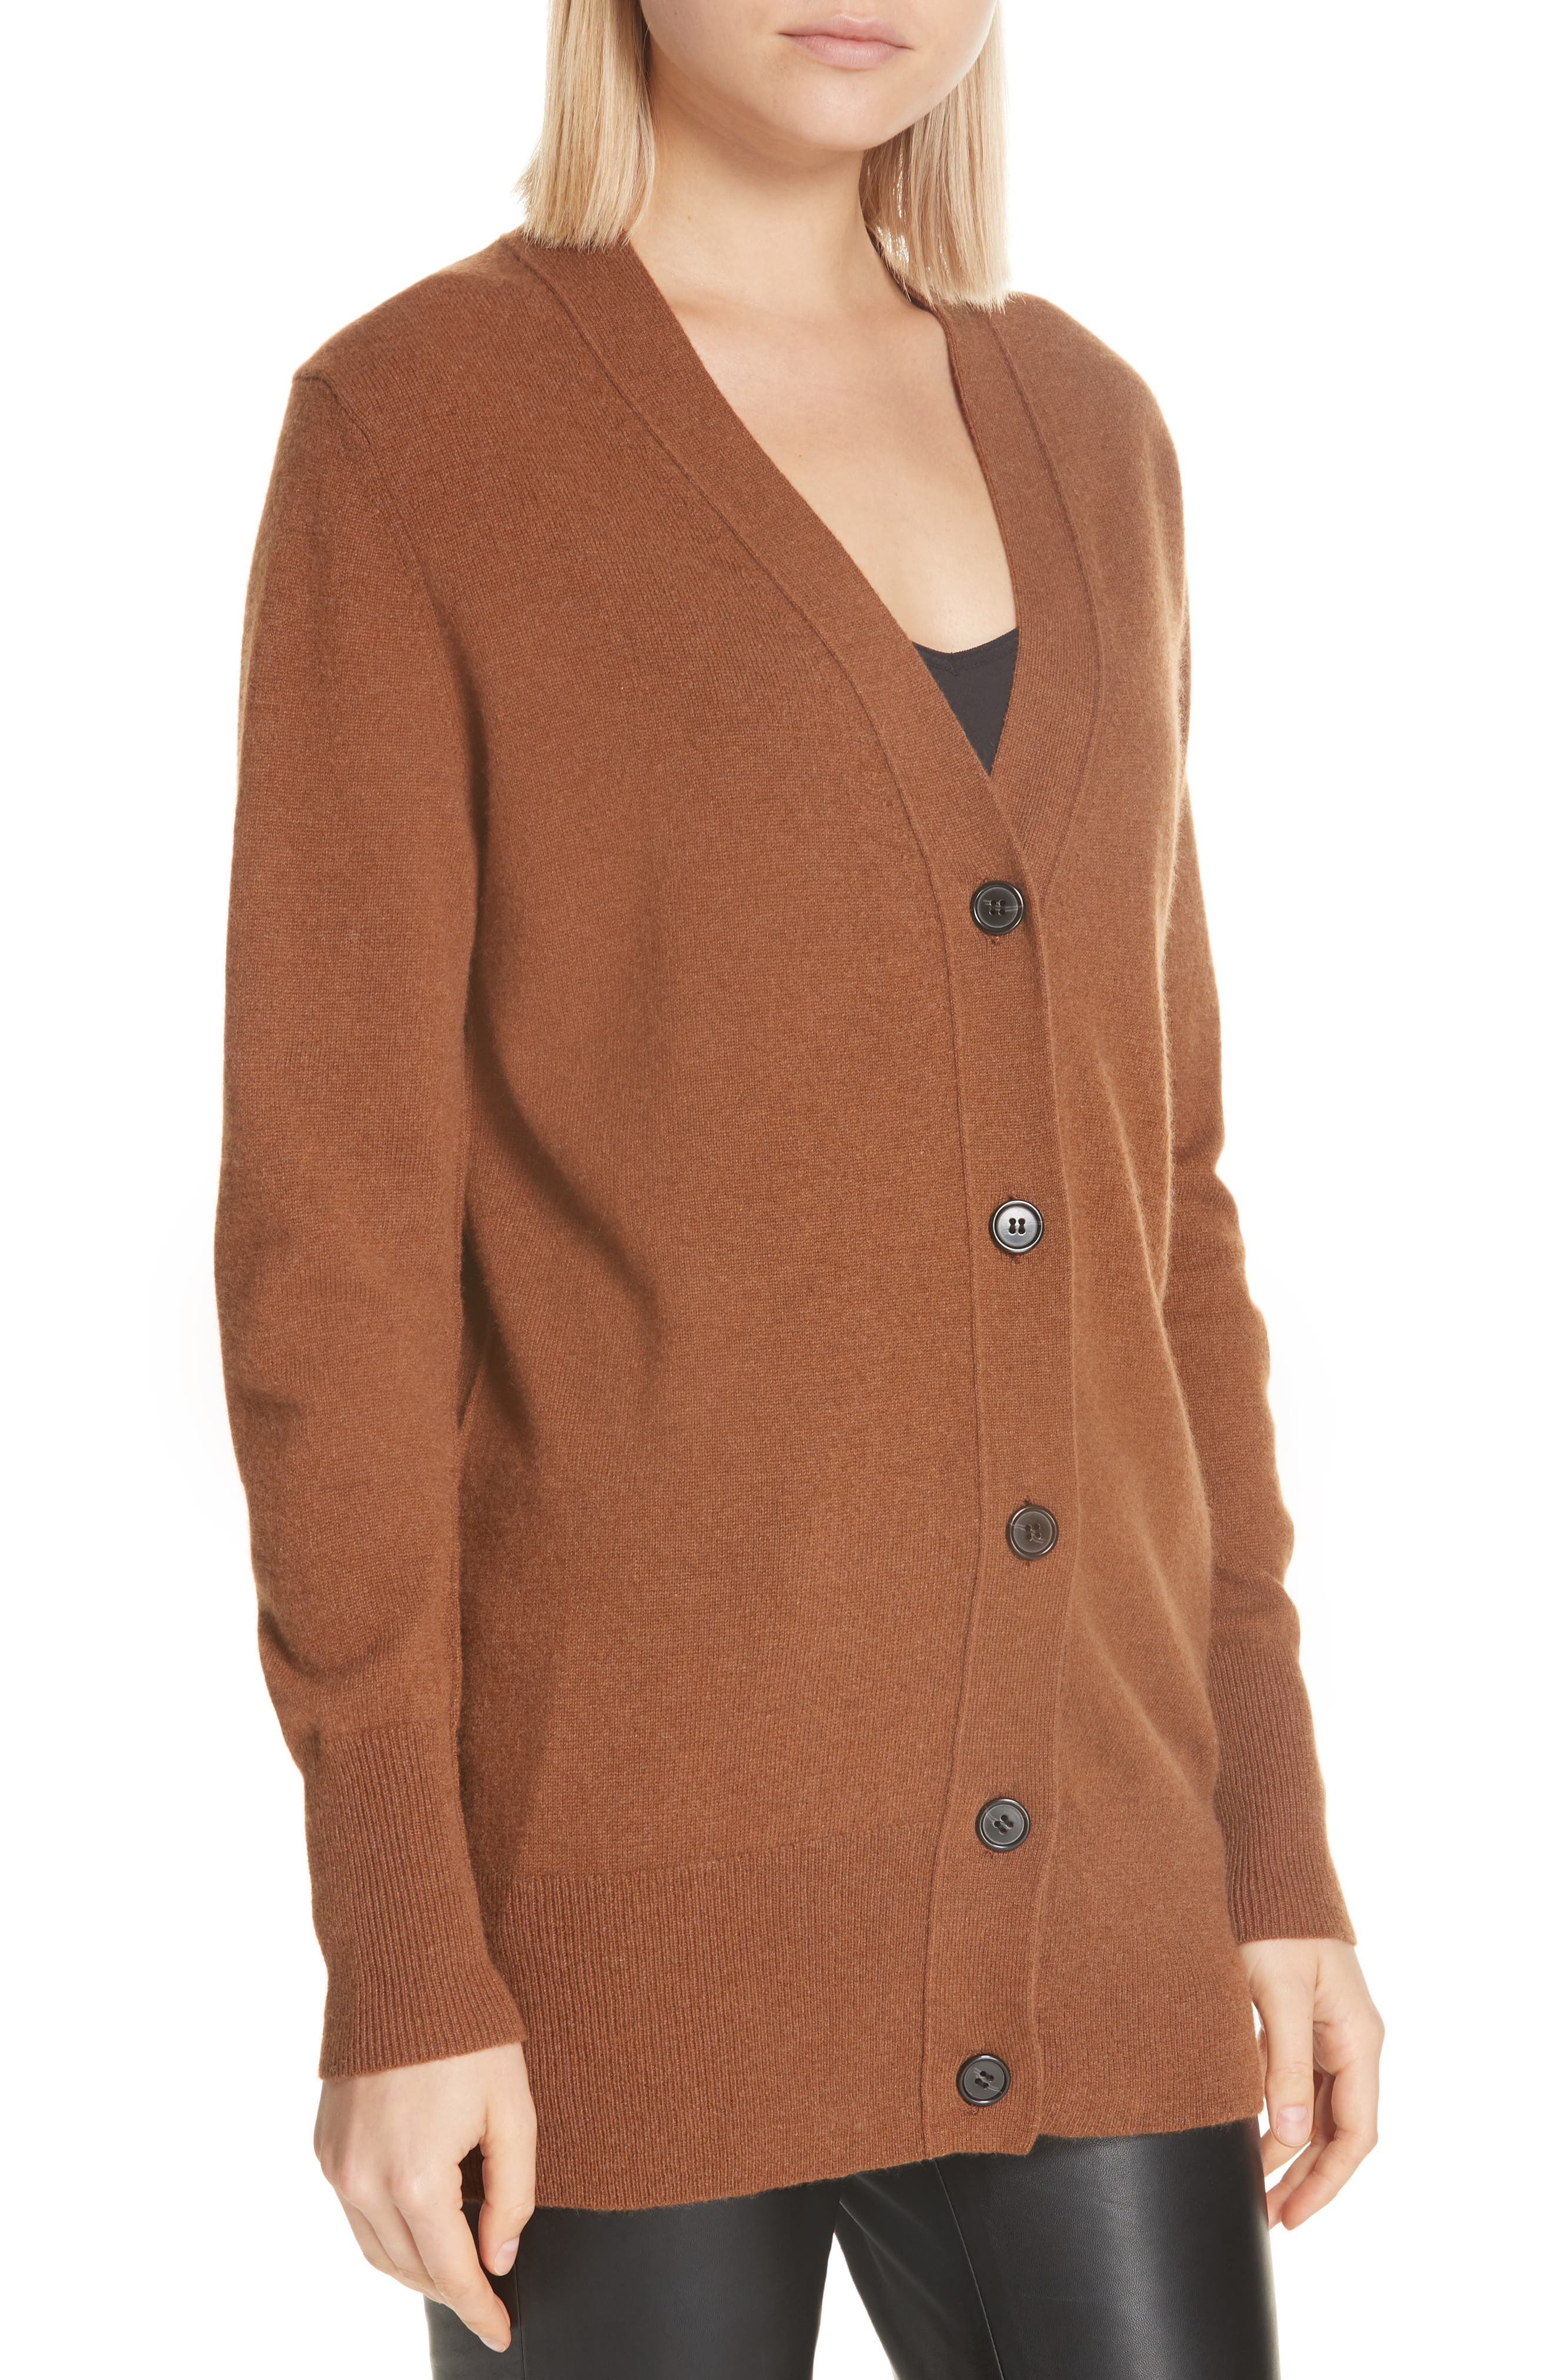 NILI LOTAN,                             Lane Cashmere Cardigan,                             Alternate thumbnail 4, color,                             COGNAC